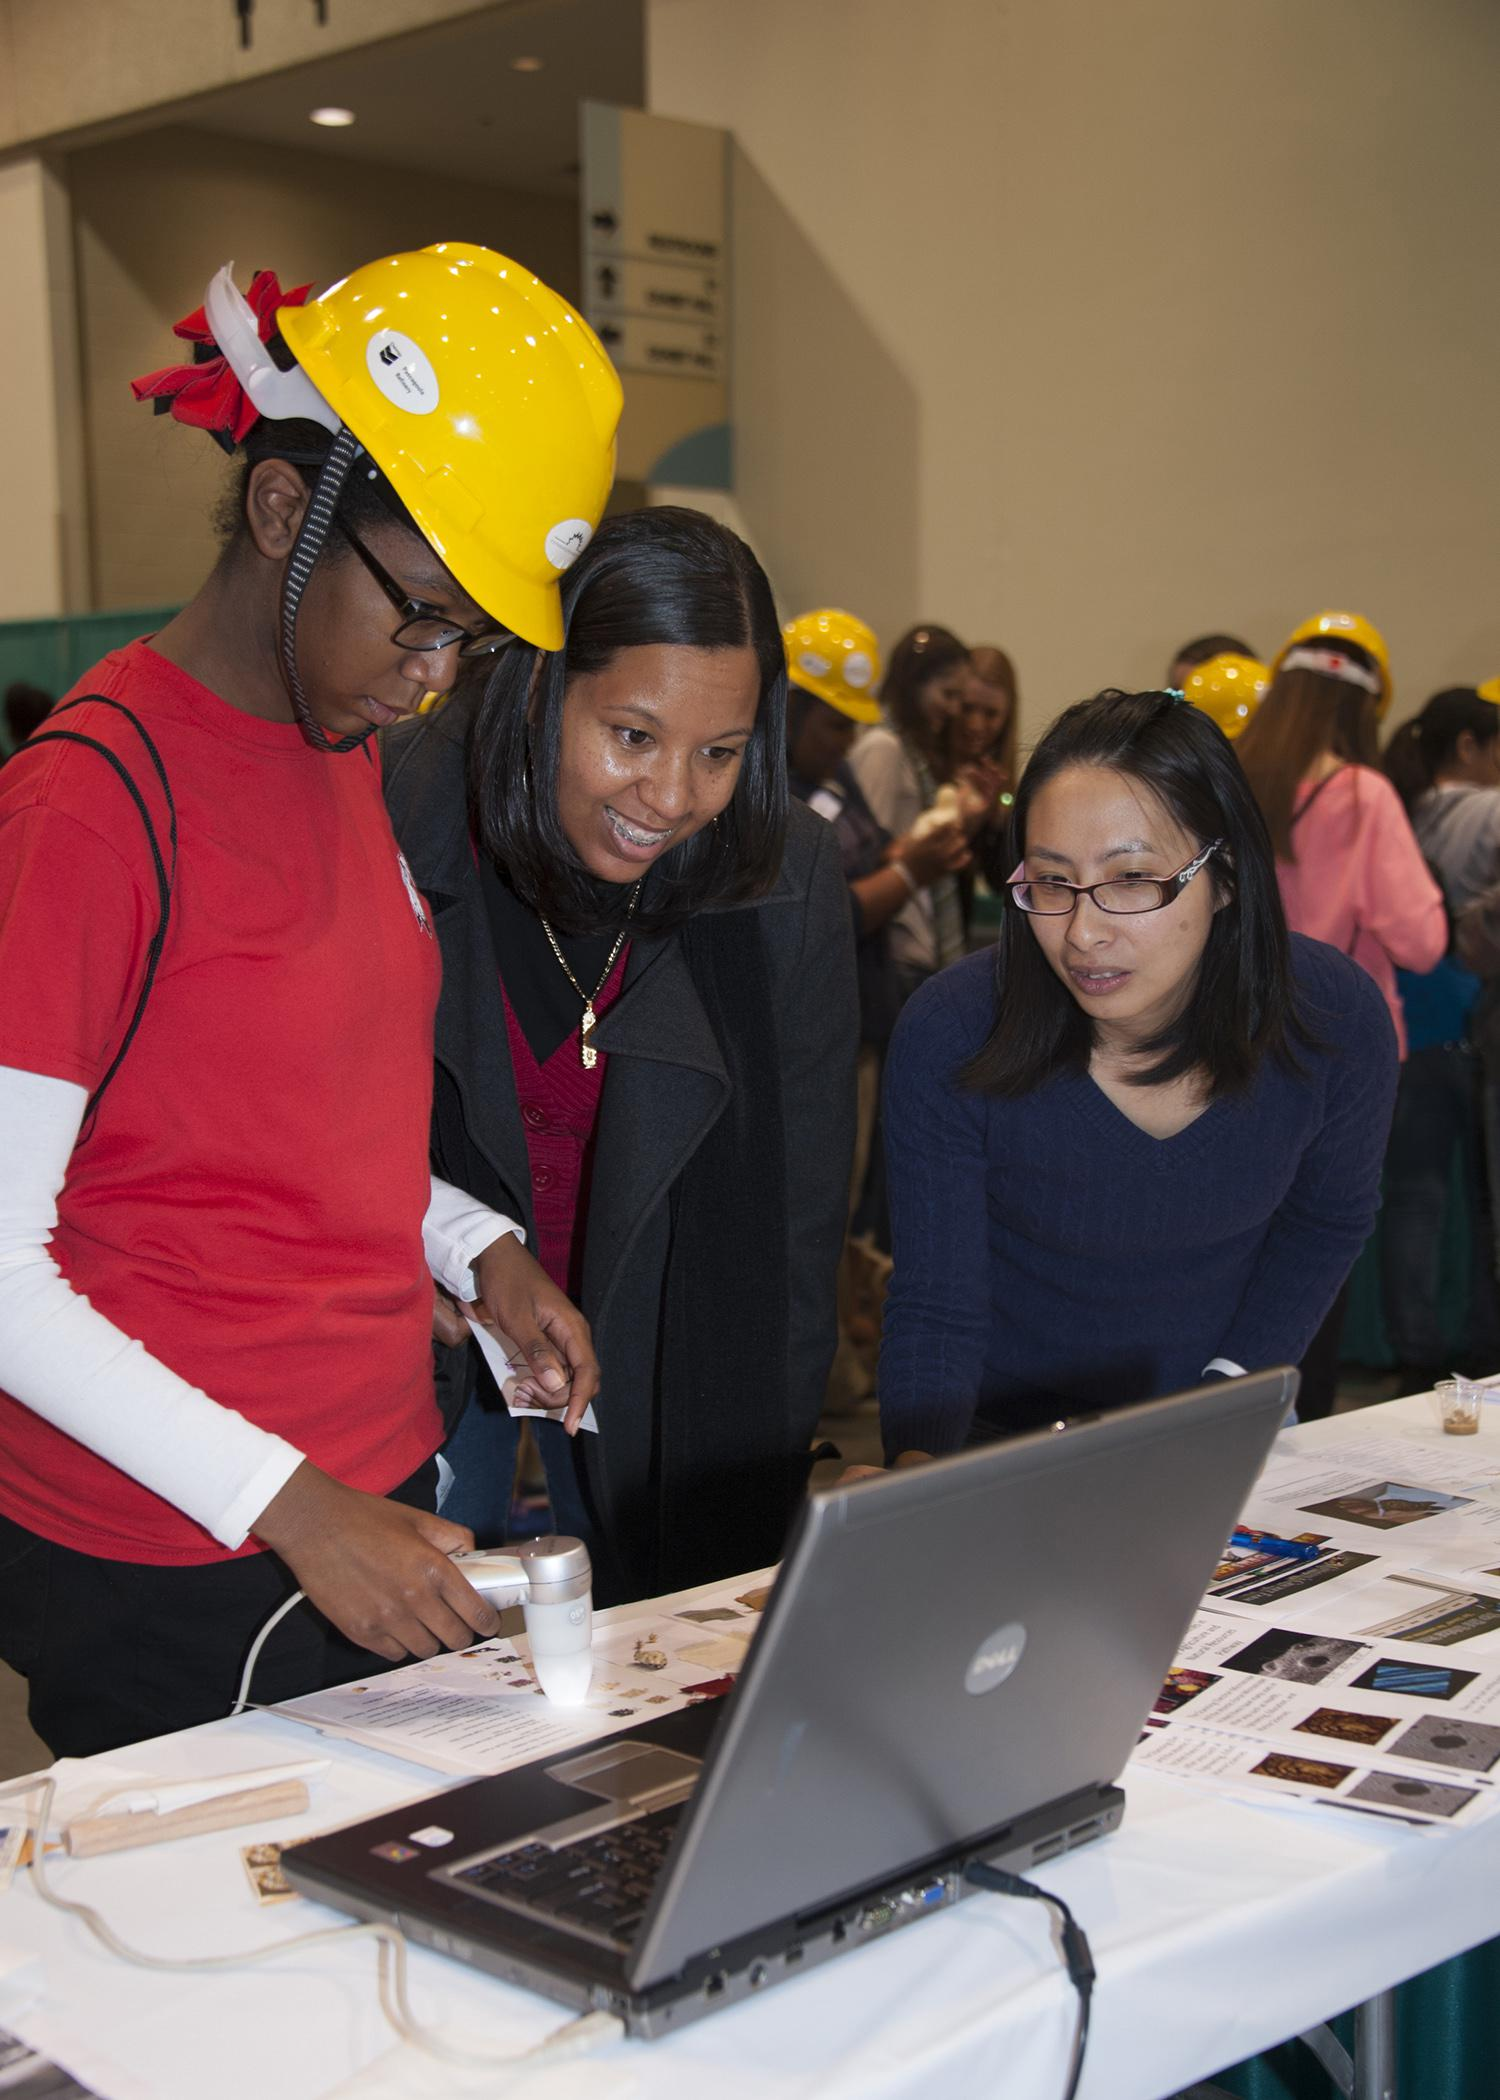 I-Wei Chu, with Mississippi State University's Institute for Imaging and Analytical Technologies, helps Biloxi Junior High School eighth-grader, Danaisha Cherry, and her mother, Lydia Cherry, look at some images with a scanning electron microscope during the Pathways2Possibilities career expo Nov. 13. More than 6,000 eighth-graders participated in the two-day event at the Mississippi Coast Coliseum and Convention Center in Biloxi. (Photo by MSU Ag Communications/Kat Lawrence)